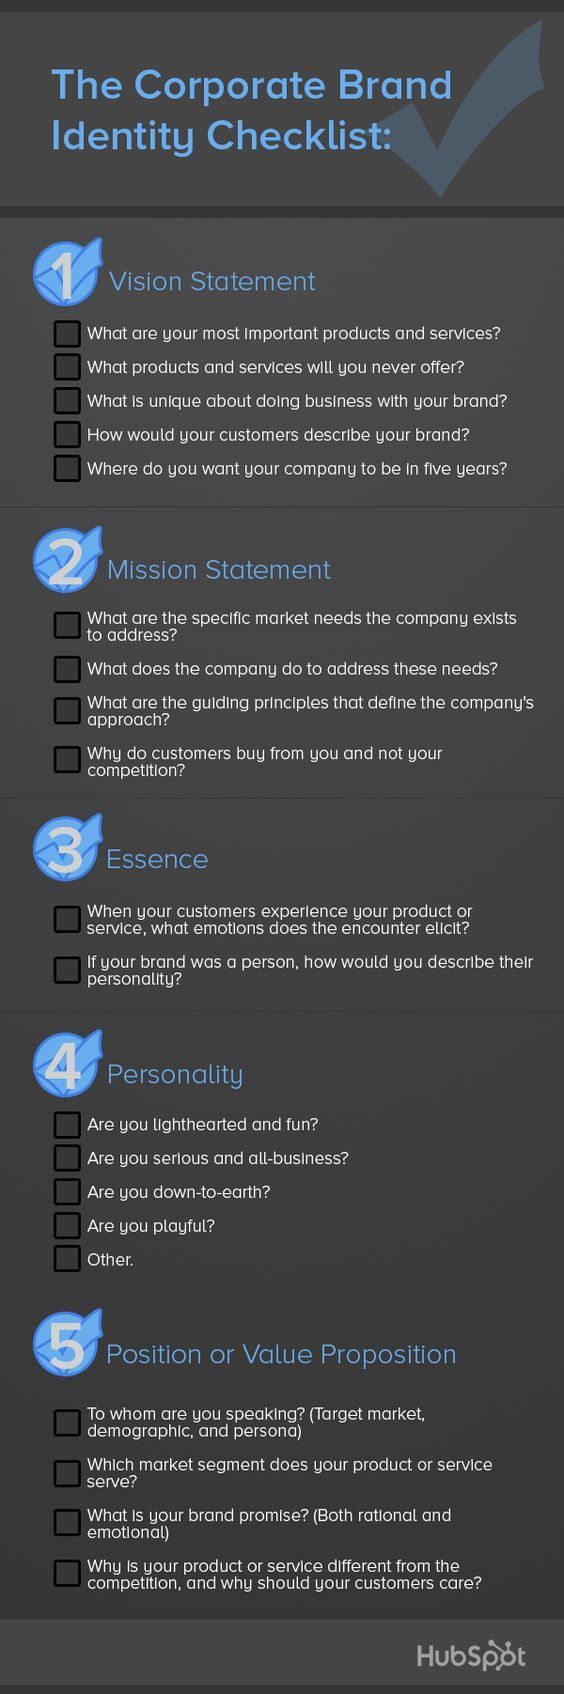 corporate brand identity checklist